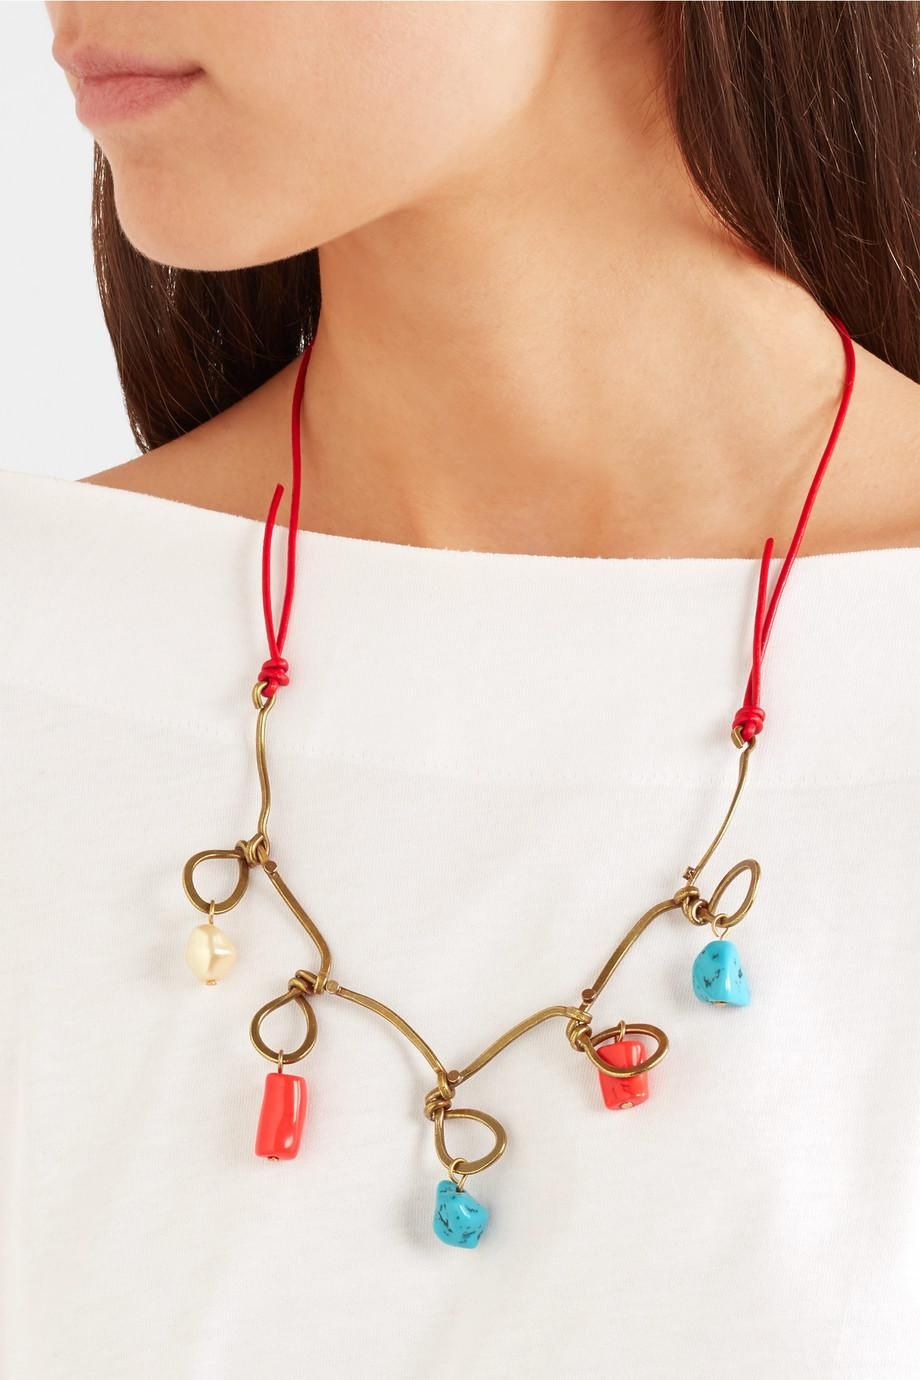 Marni Gold-tone, Leather, Resin And Faux Pearl Necklace - Brass